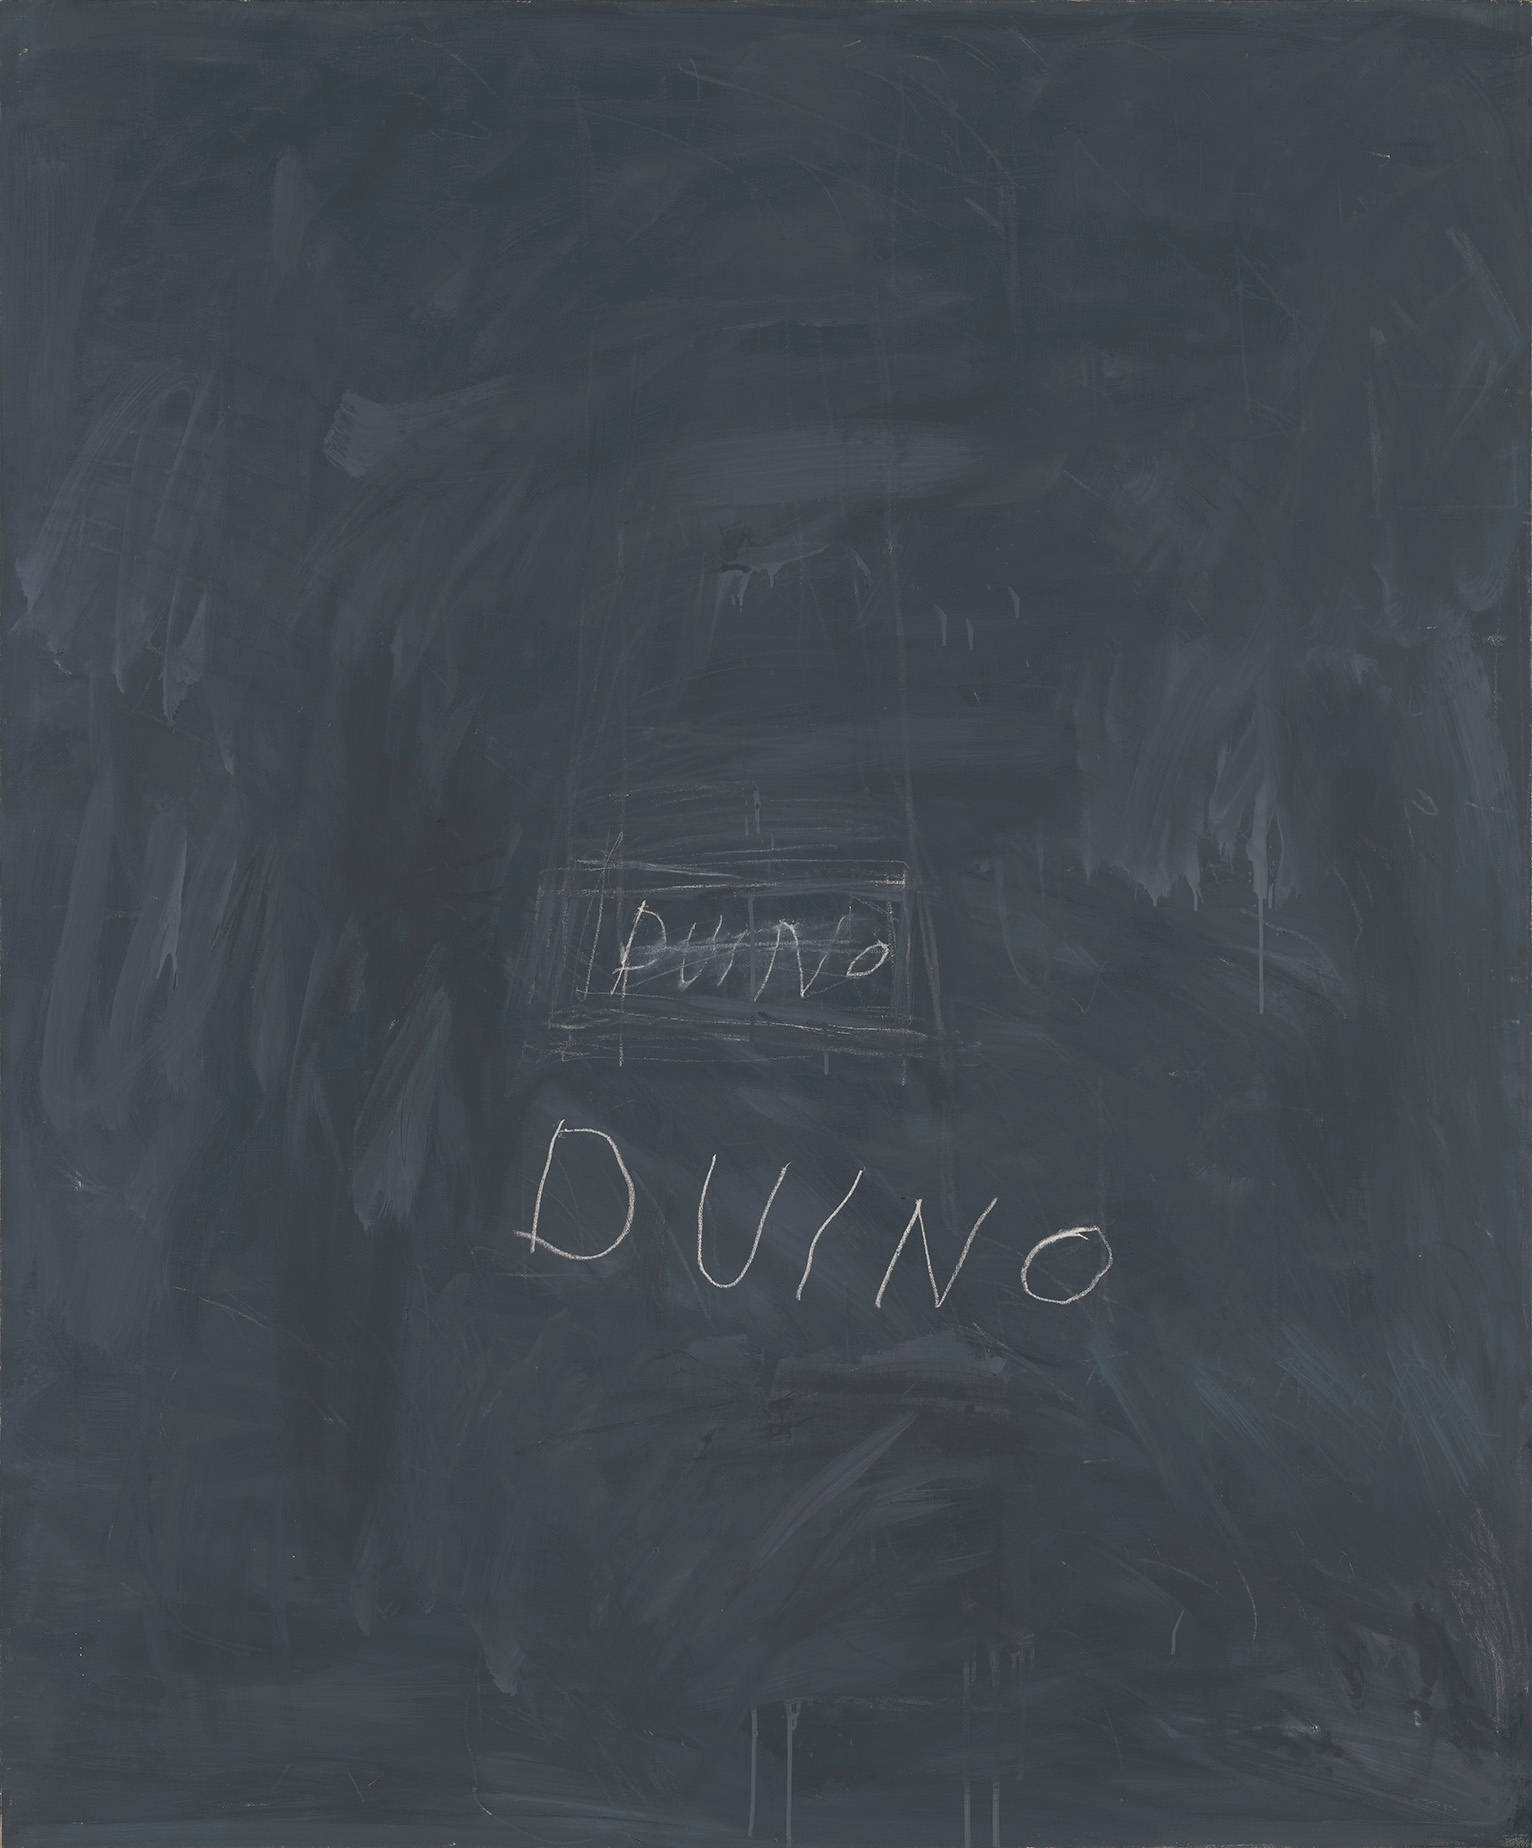 Twombly Duino